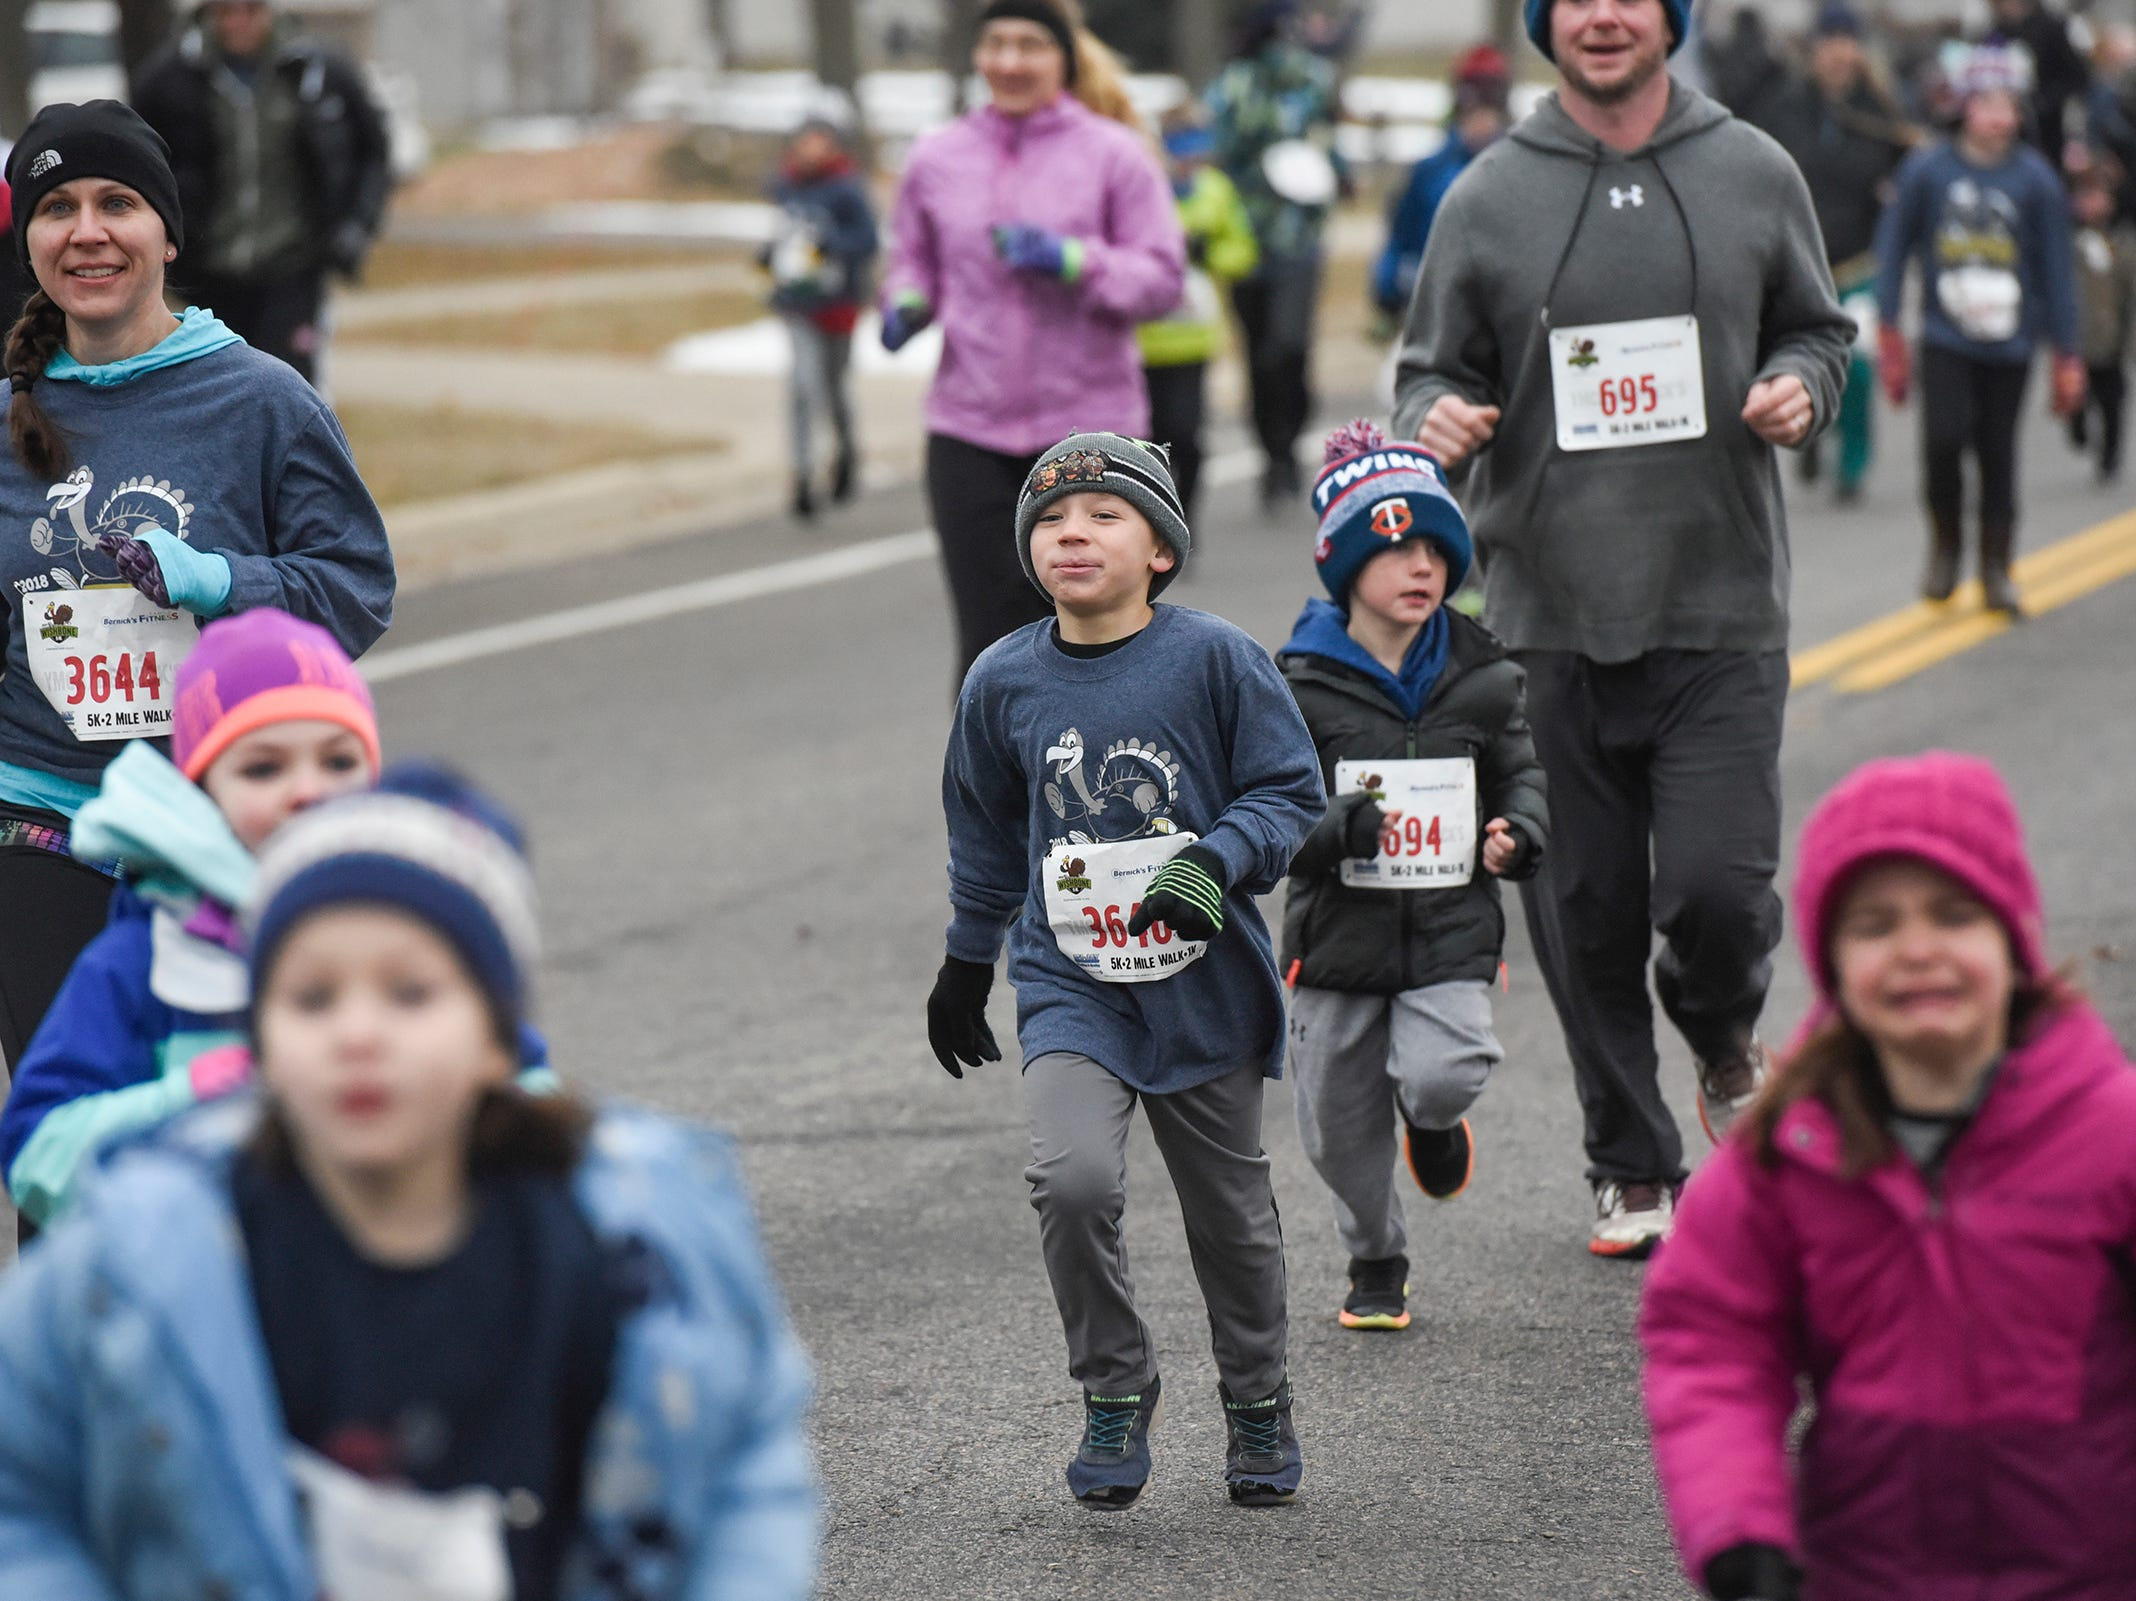 Kids run participants approach the finish line during the Wishbone 5K Thursday, Nov. 22, at the St. Cloud Area Family YMCA.